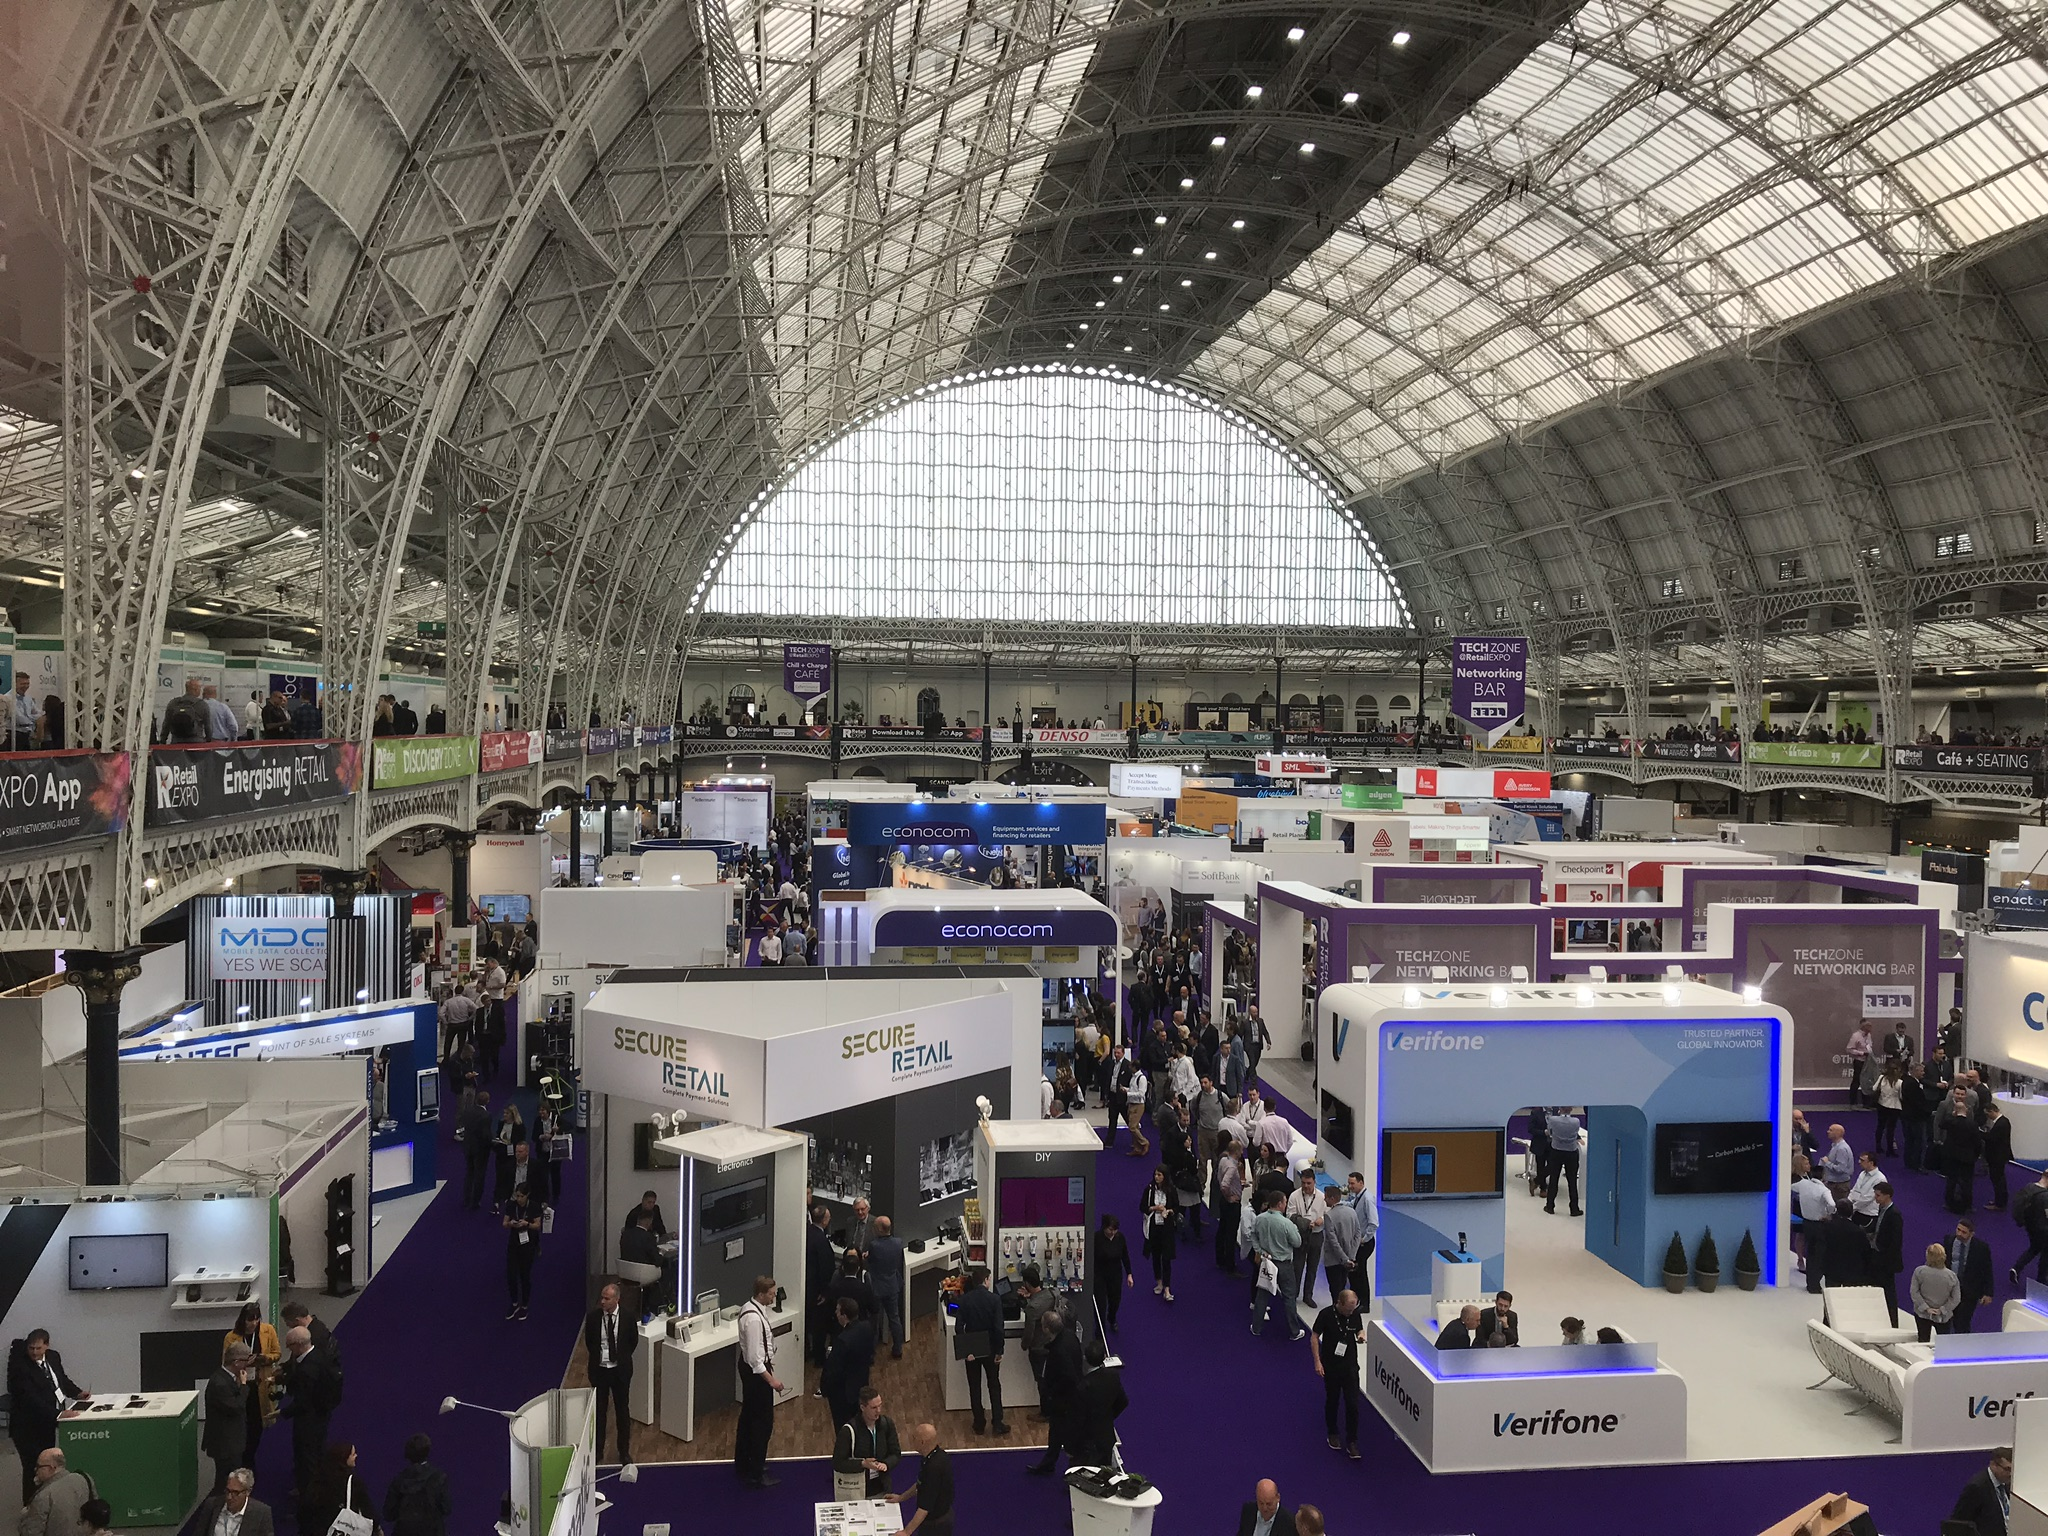 Secure Retail's stand at RetailEXPO Olympia on 01-02 May 2019.